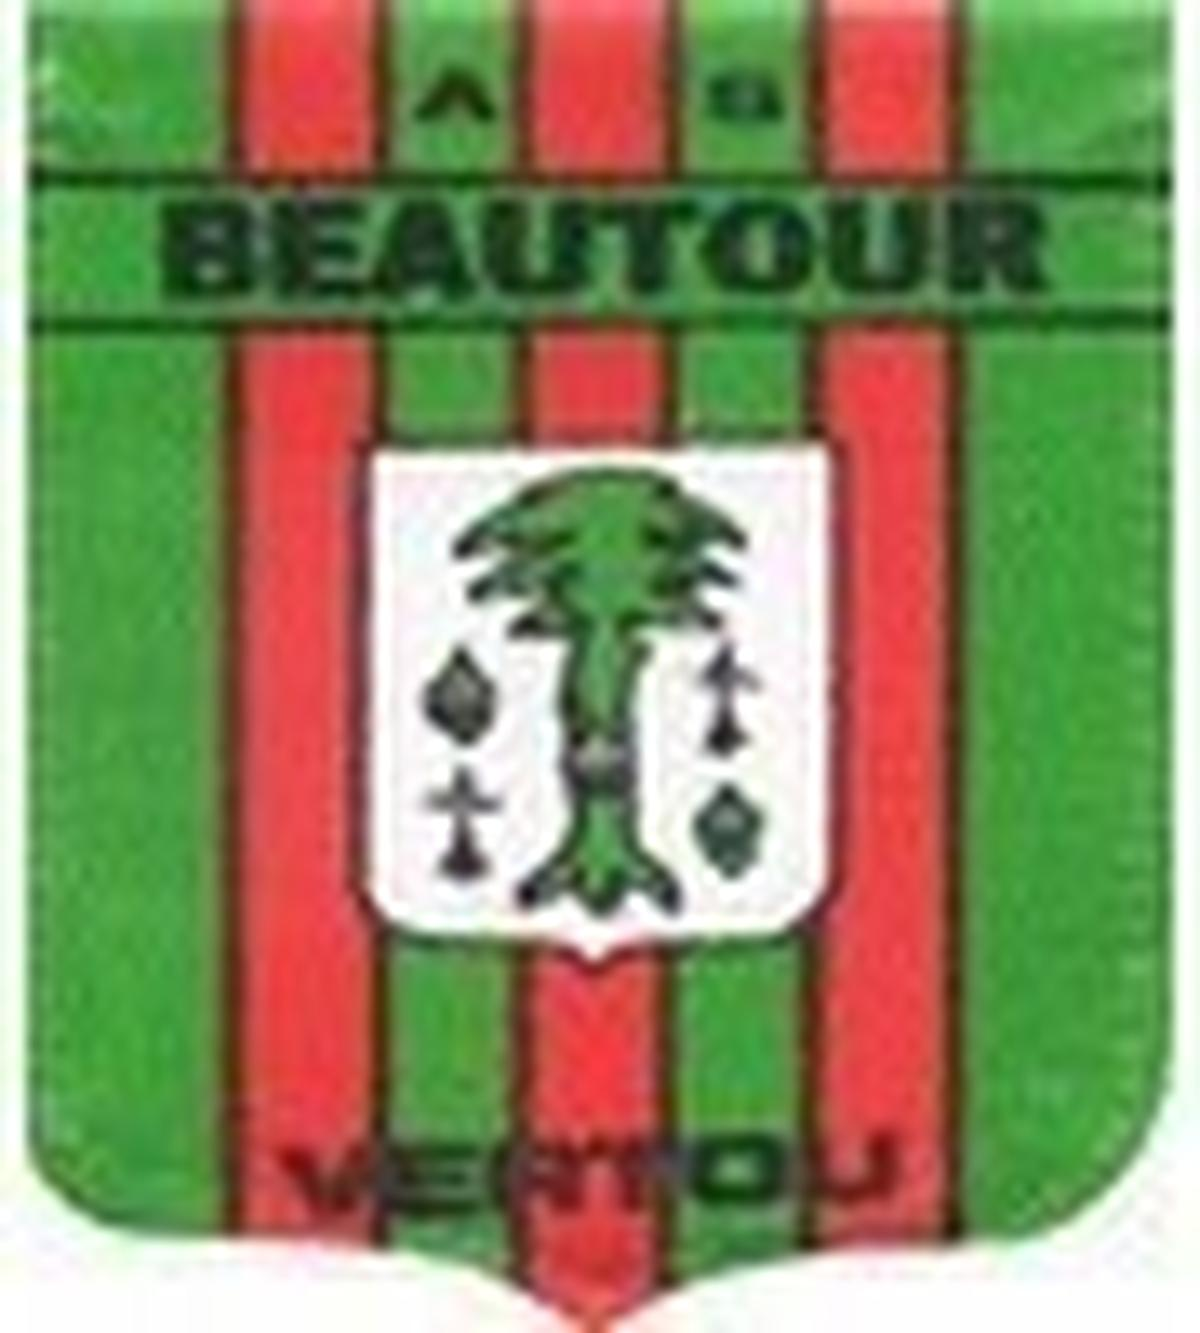 AS Beautour